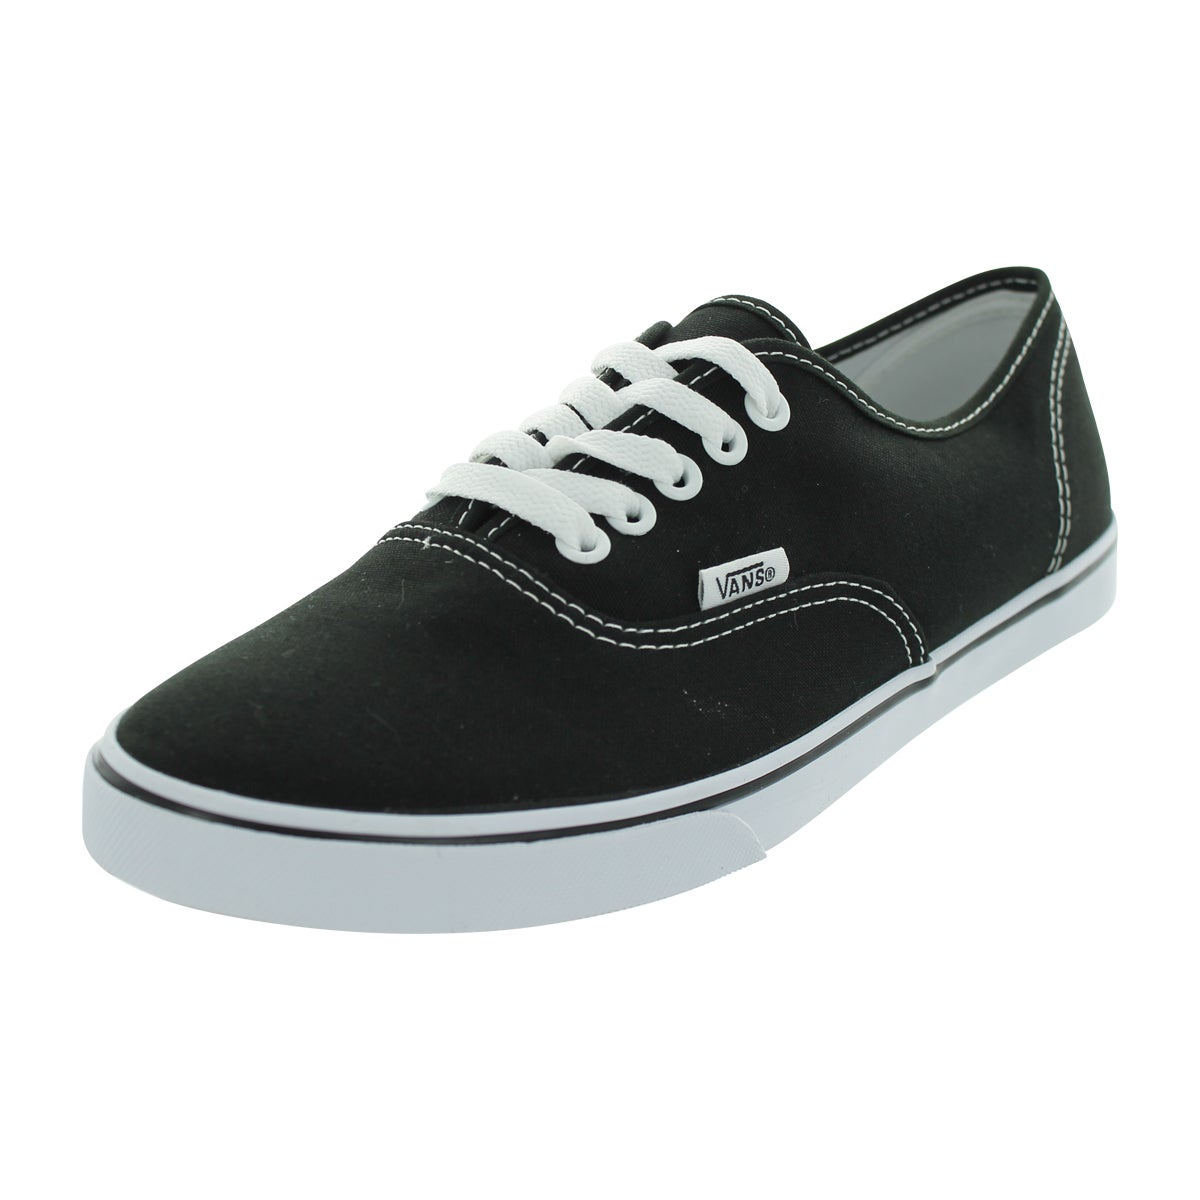 078042132ff Shop Vans Authentic Lo Pro Black Canvas Skate Shoes - Free Shipping ...